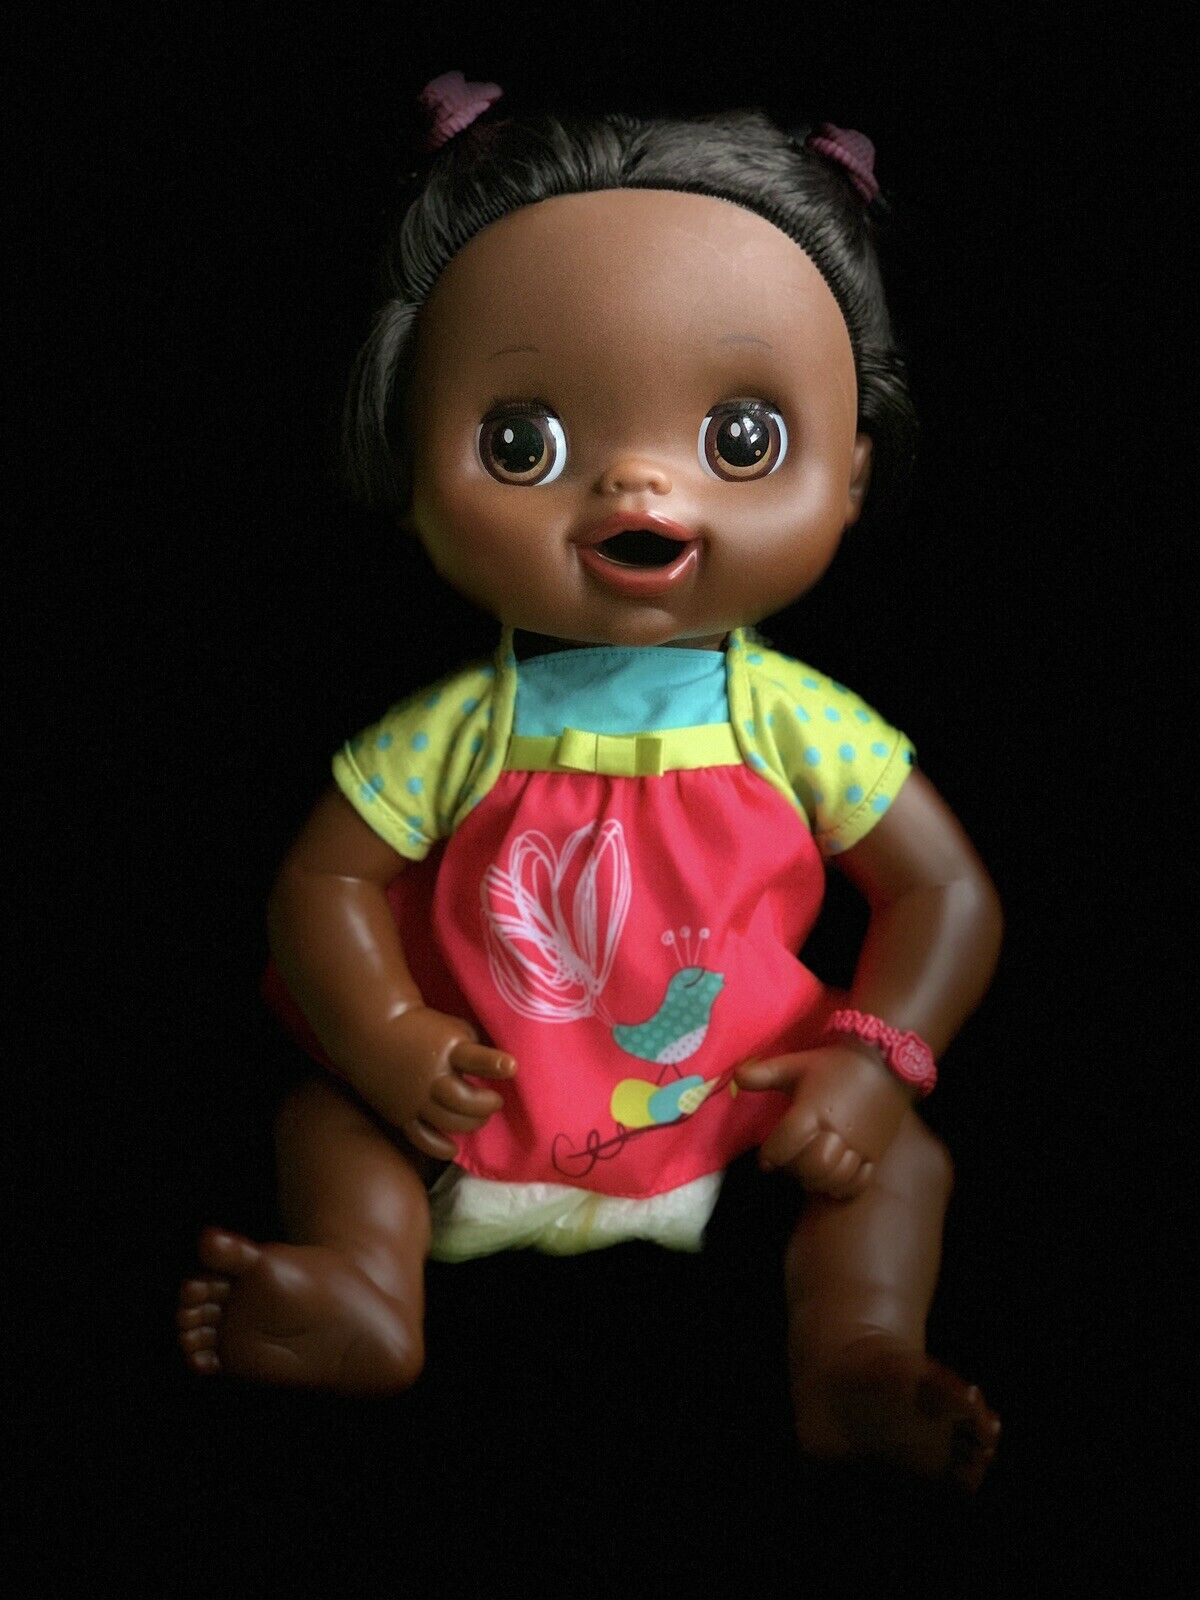 Baby Alive My Baby Puppe Doll.